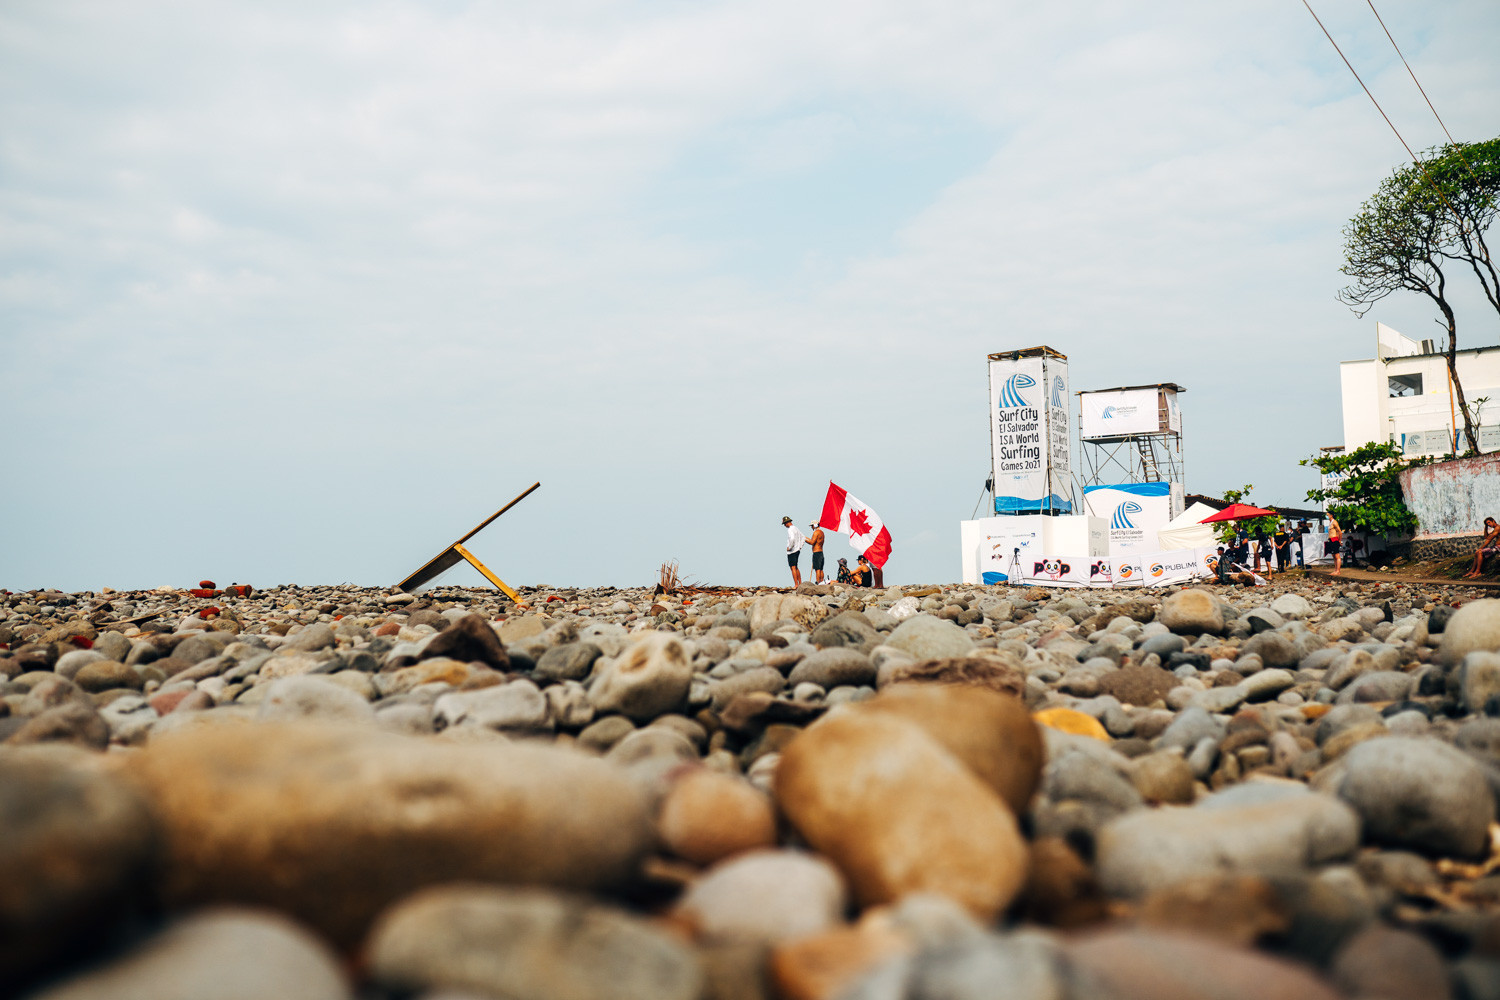 Canada is one of 51 nations represented at the World Surfing Games ©ISA/Pablo Jimenez